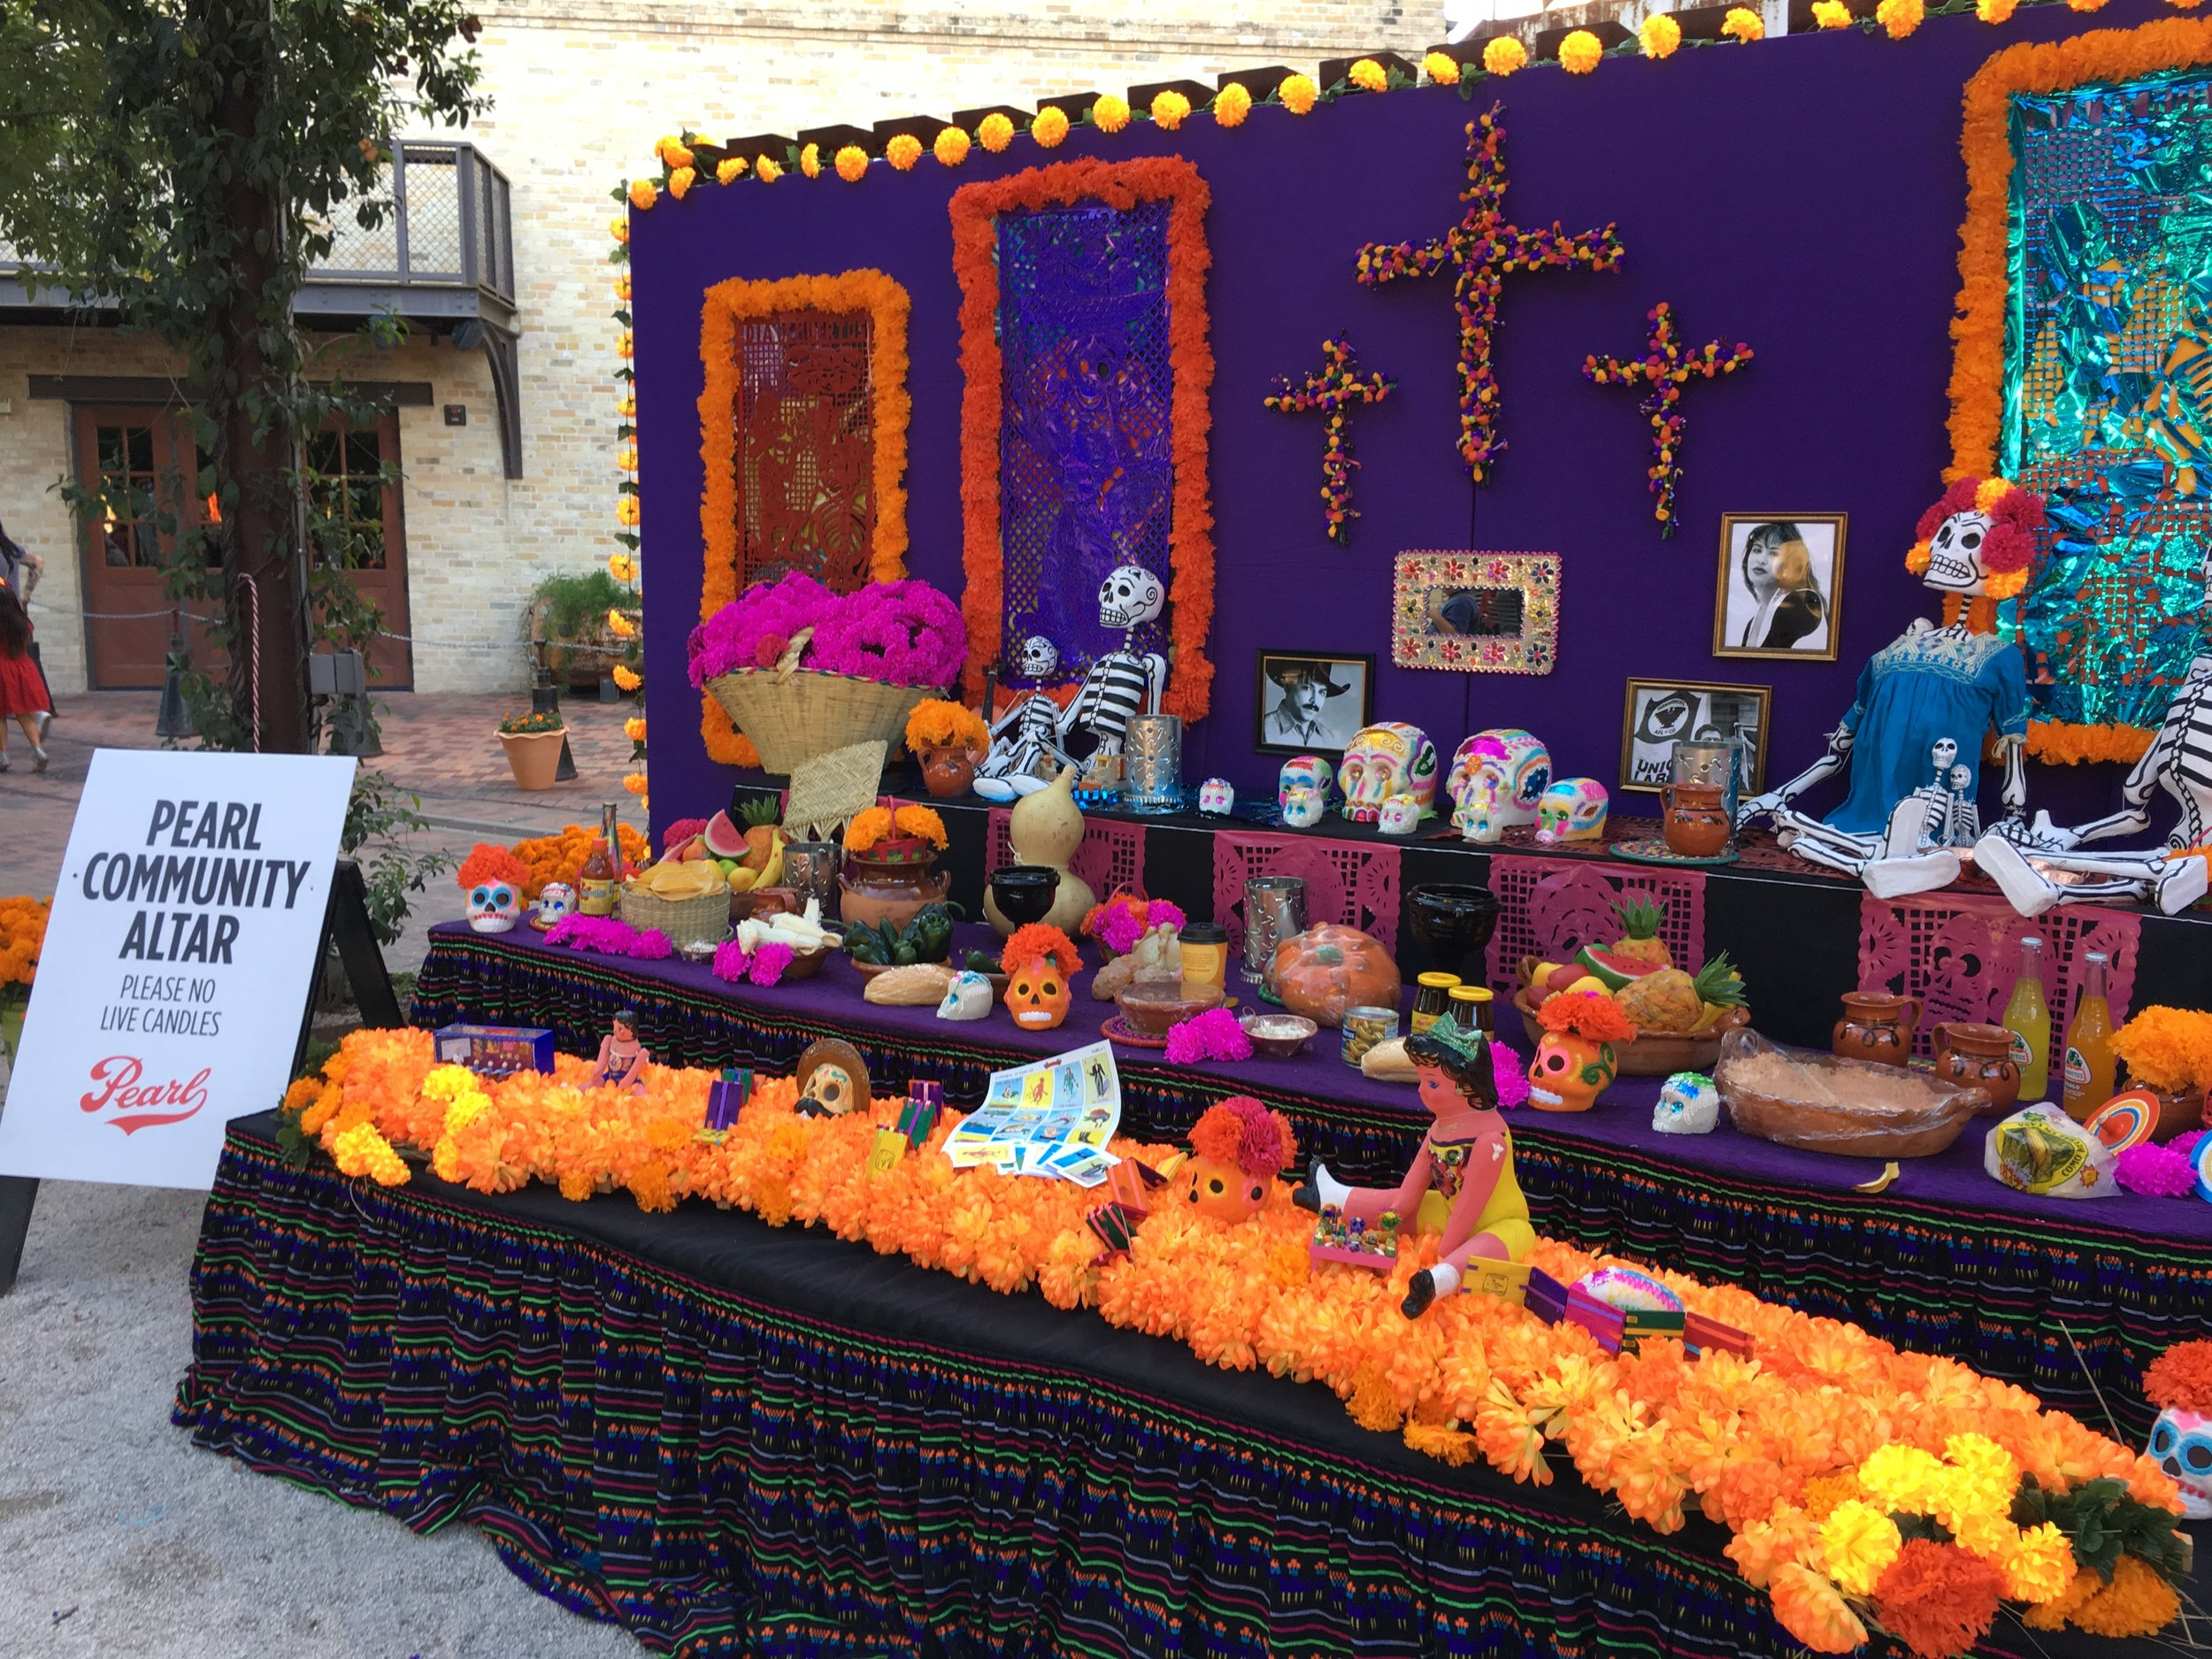 The Pearl Brewery community altar in San Antonio.